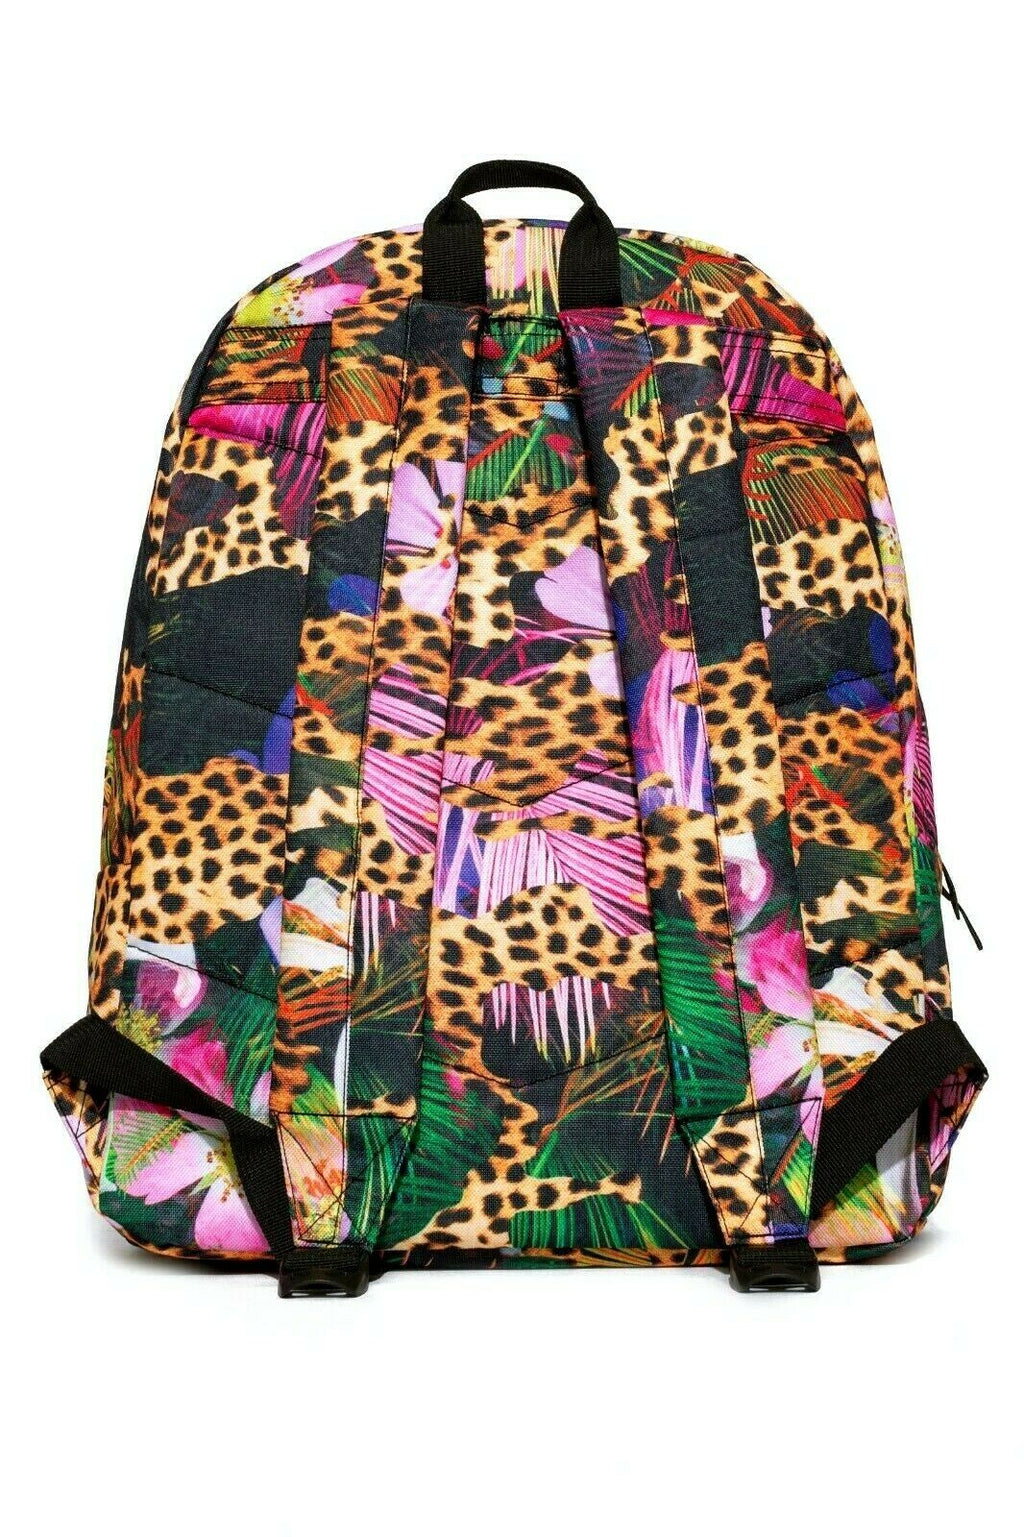 HYPE HOLOGRAPHIC JUNGLE BACKPACK RUCKSACK BAG - MULTI